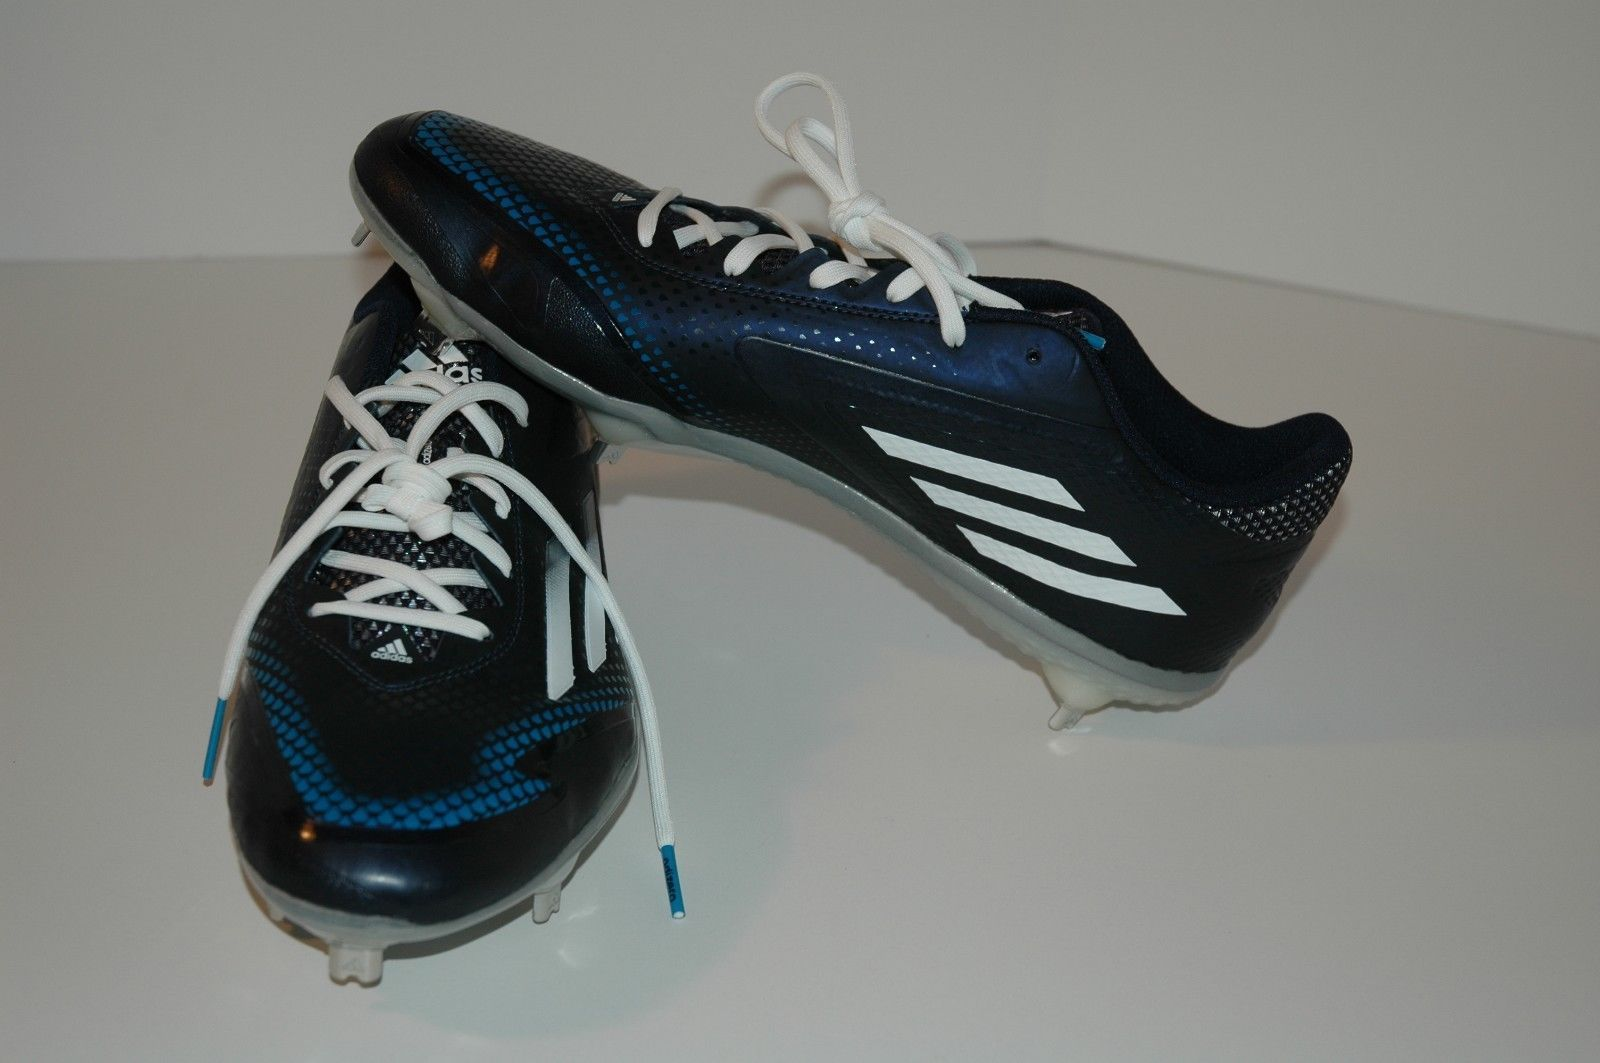 check out 56c05 f9a24 S l1600. S l1600. Previous. NEW Adidas Adizero Afterburner 2.0 Metal  Baseball Cleats Blue S84704 Sz 11